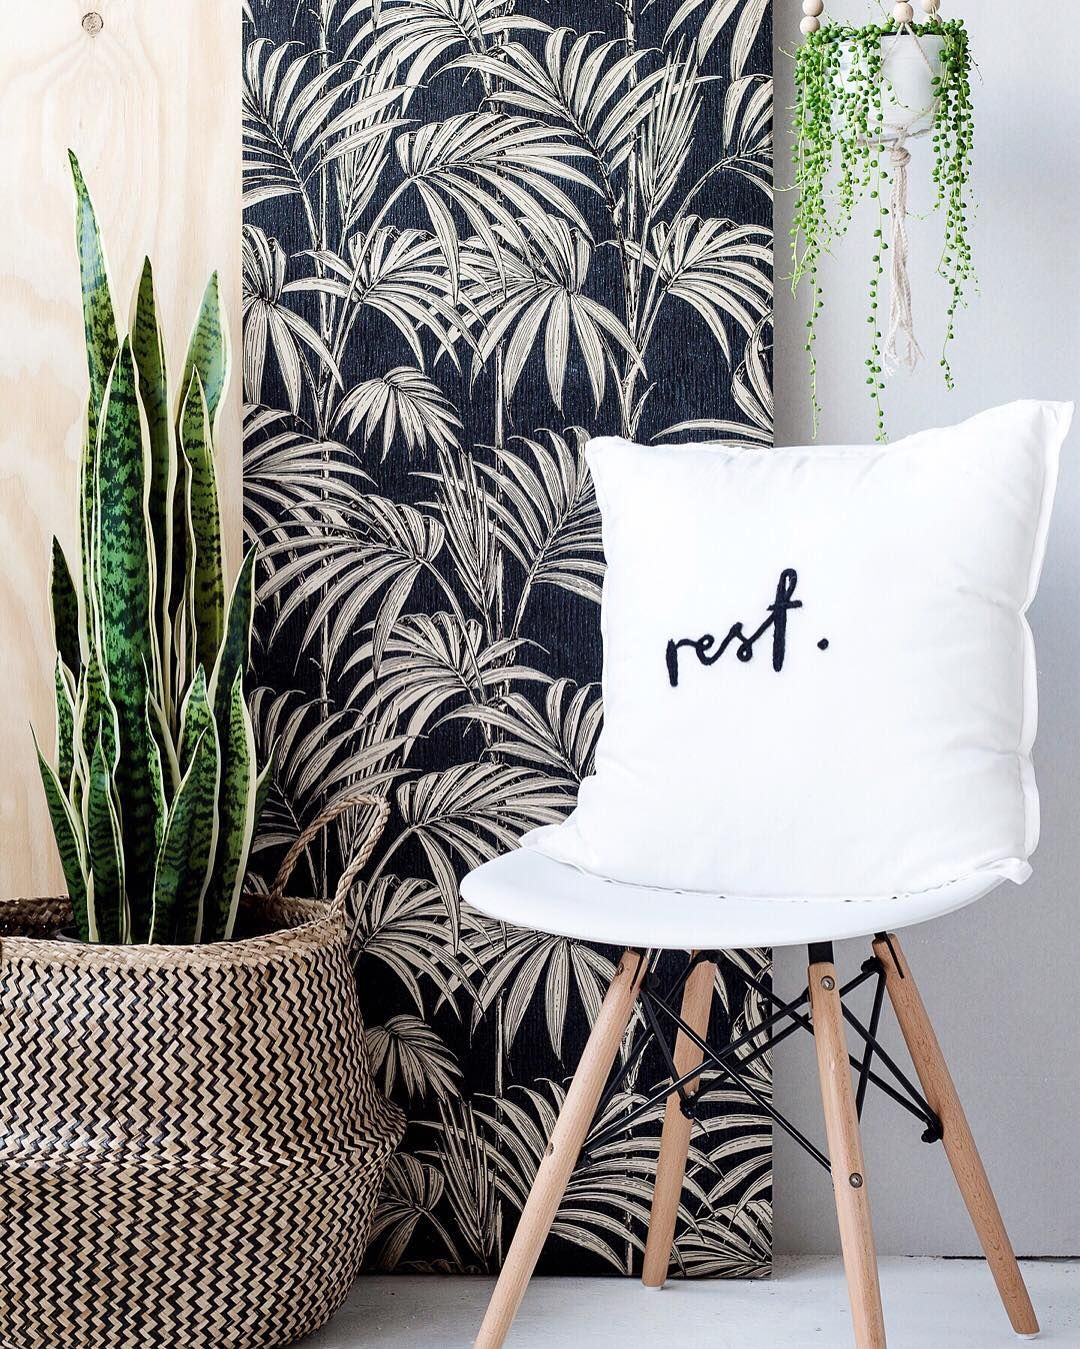 Is it just me or are we all crushing hard on botanical prints right now? I can't help but love the leafy look that is decorating the coolest of walls at the moment. If you love this look as much as me you're in for a treat. I'm partnering with @grahamandbrown and @bandq_uk to host a giveaway and share the plant love! You could WIN two VIP tickets for @JulienMacdonald at Feb 2017 #FashionWeek AND eight rolls of this sensational @GrahamandBrown @JulienMacdonald Honolulu black and gold foliage…